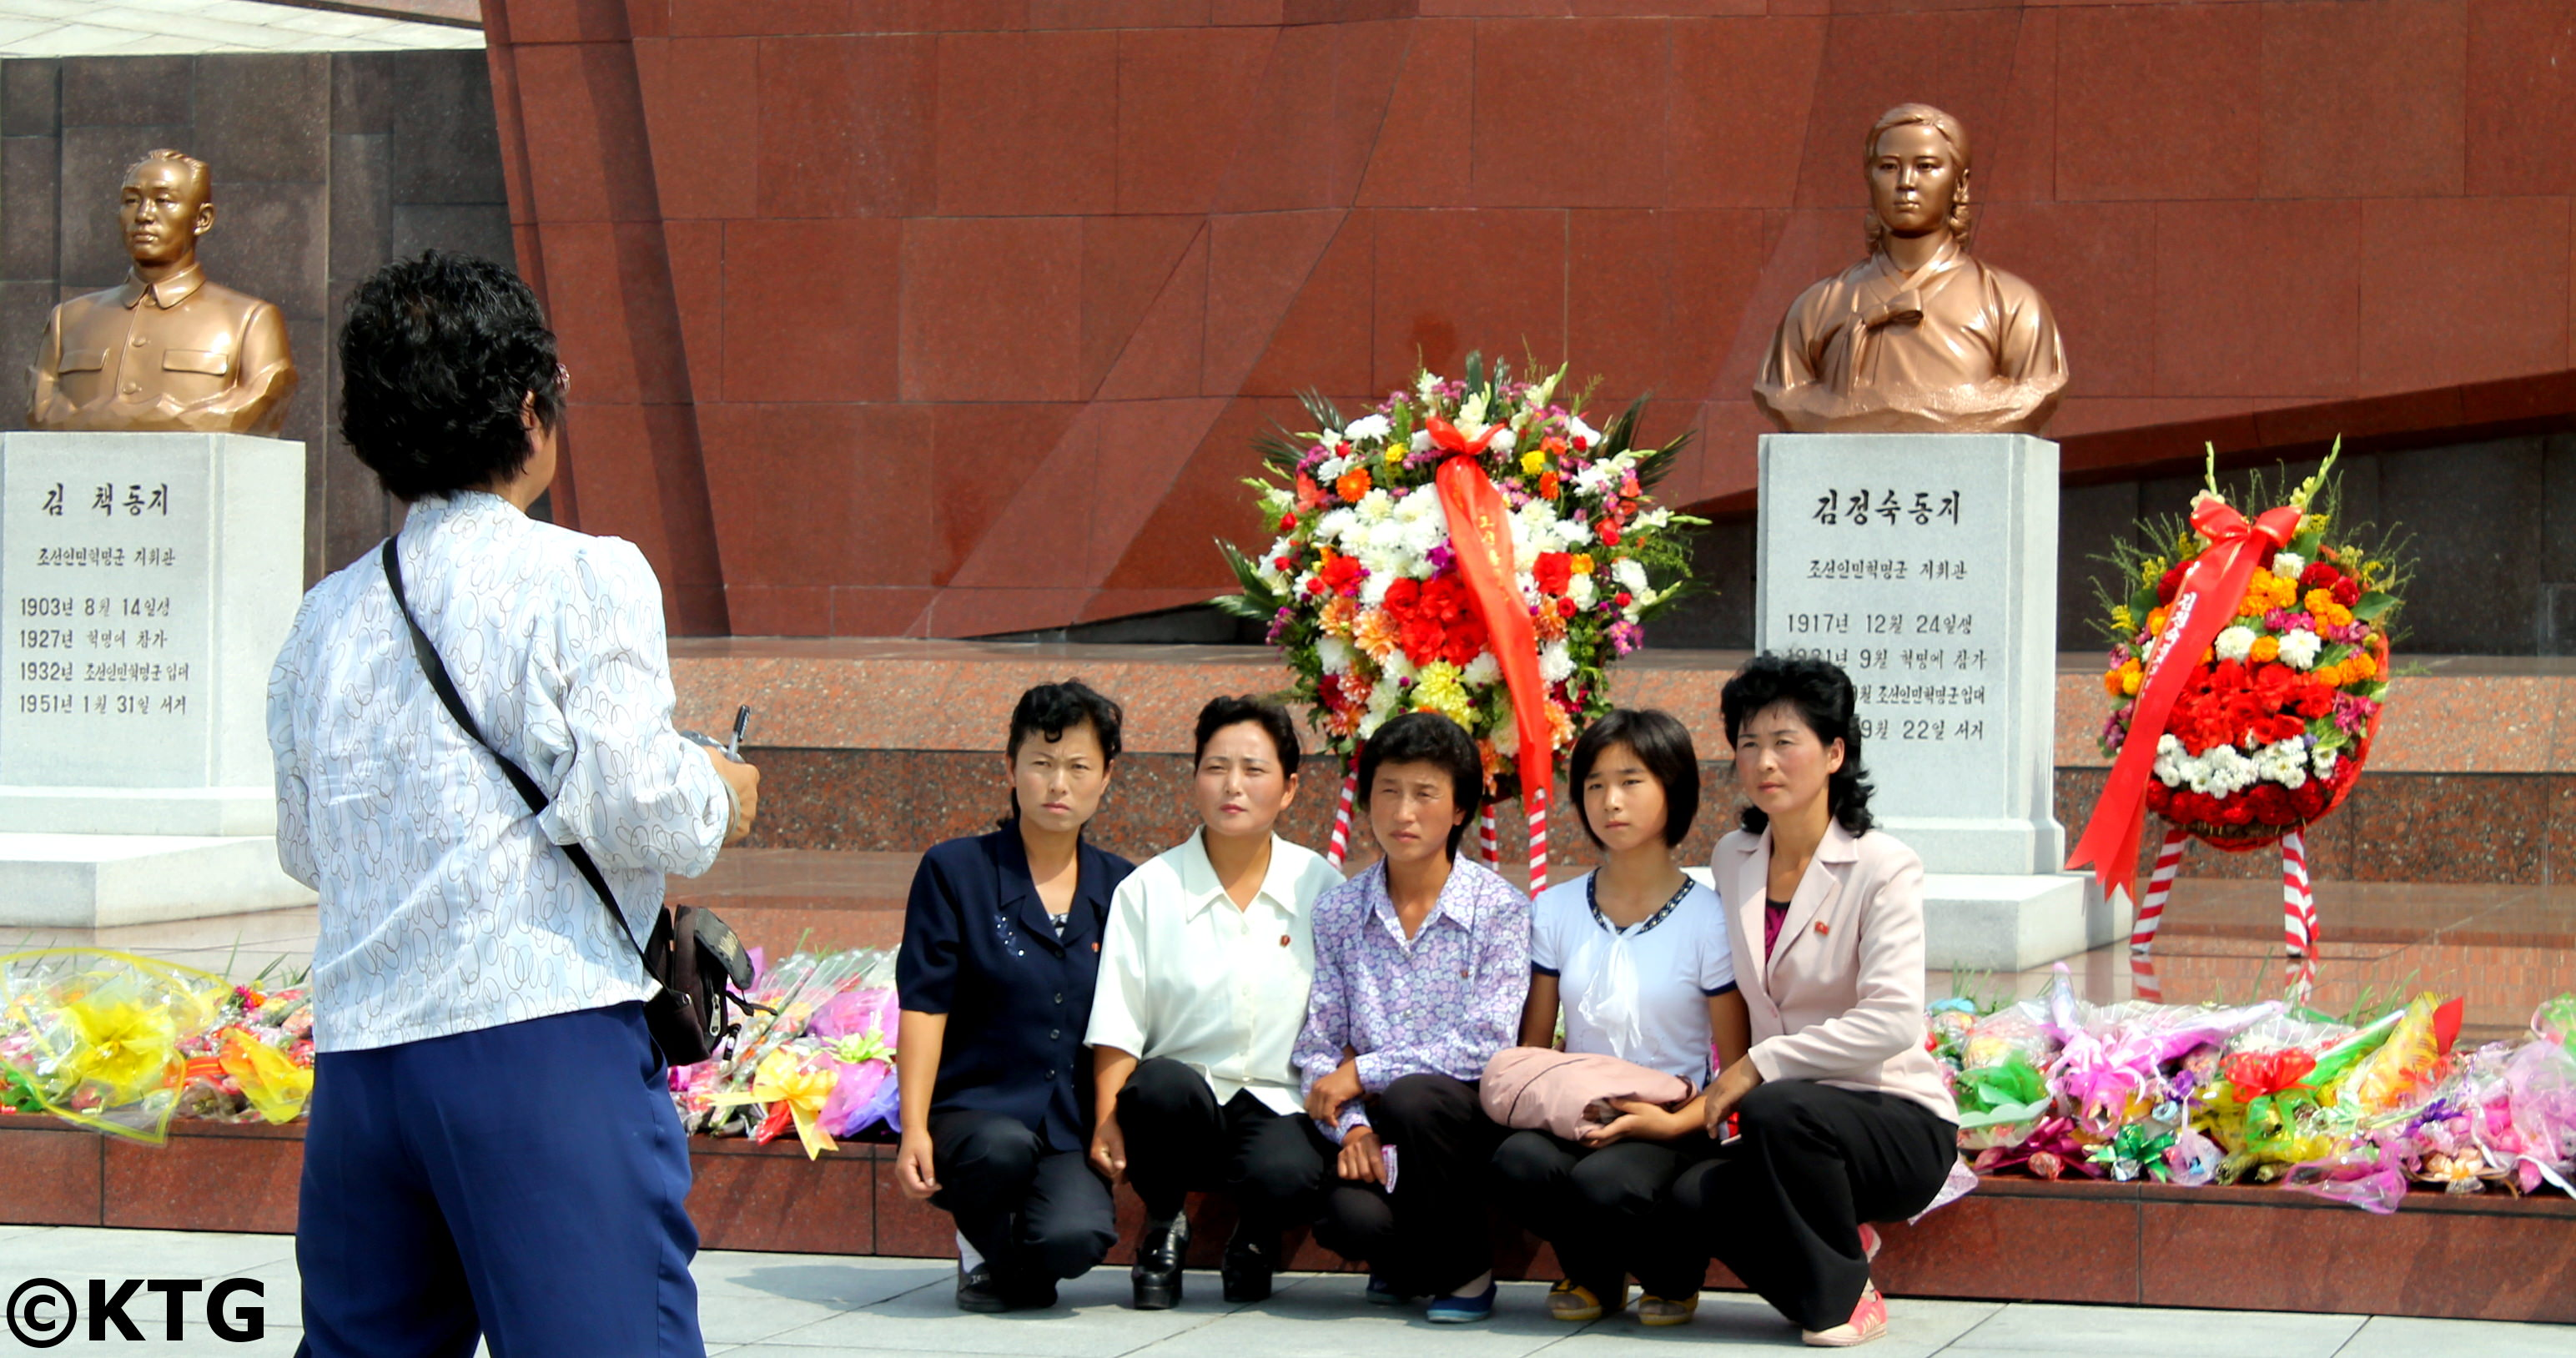 Family by the bust of Mother Kim Jong Suk at the Revolutionary Martyr's Cemetery Pyongyang, North Korea